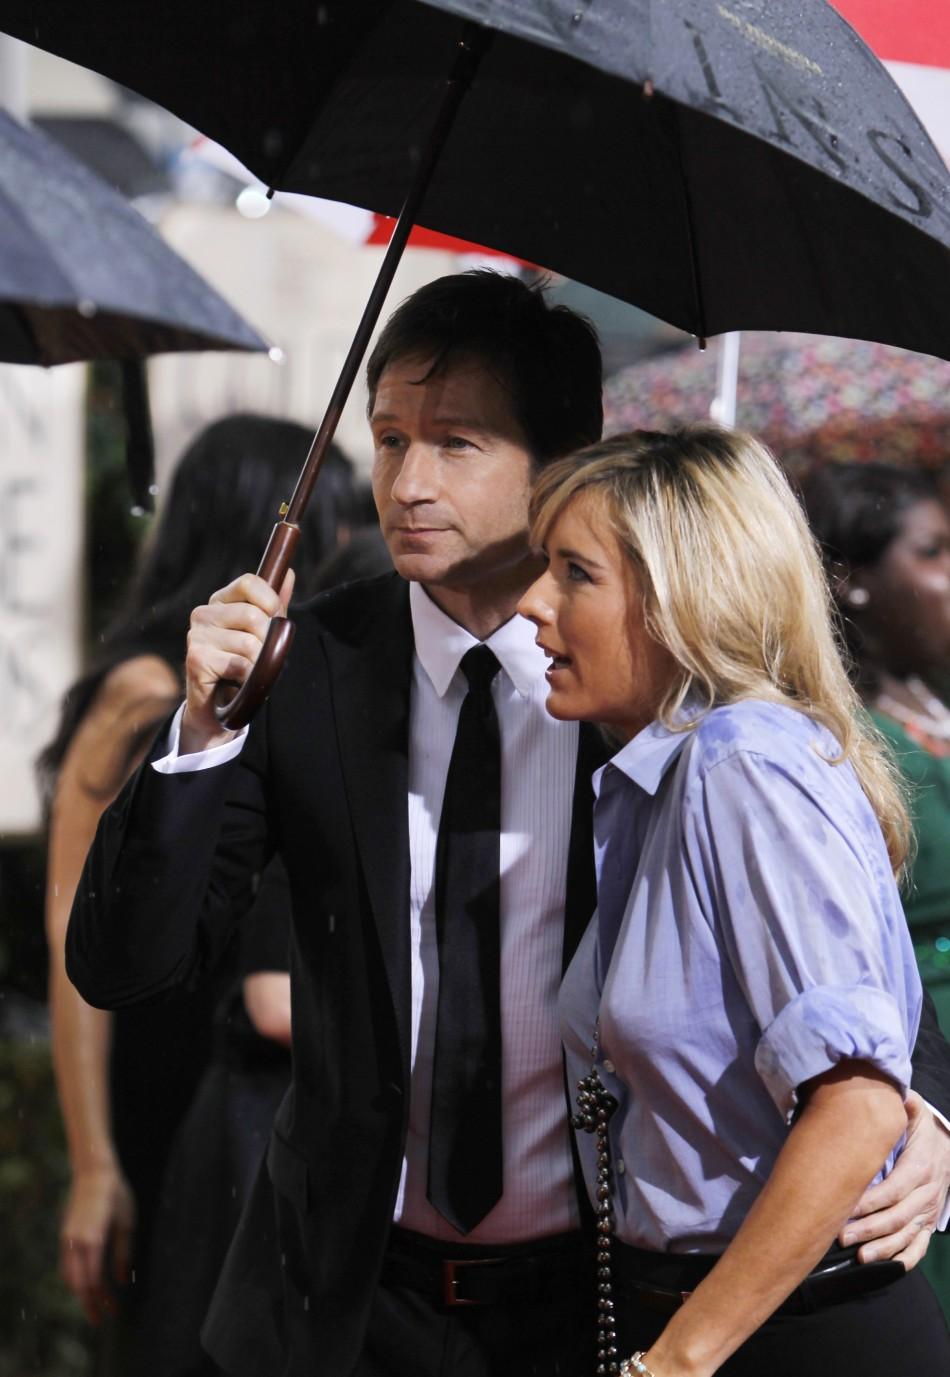 Actress Tea Leoni (R) and husband David Duchovny arrive at the 67th annual Golden Globe Awards in Beverly Hills, California January 17, 2010.